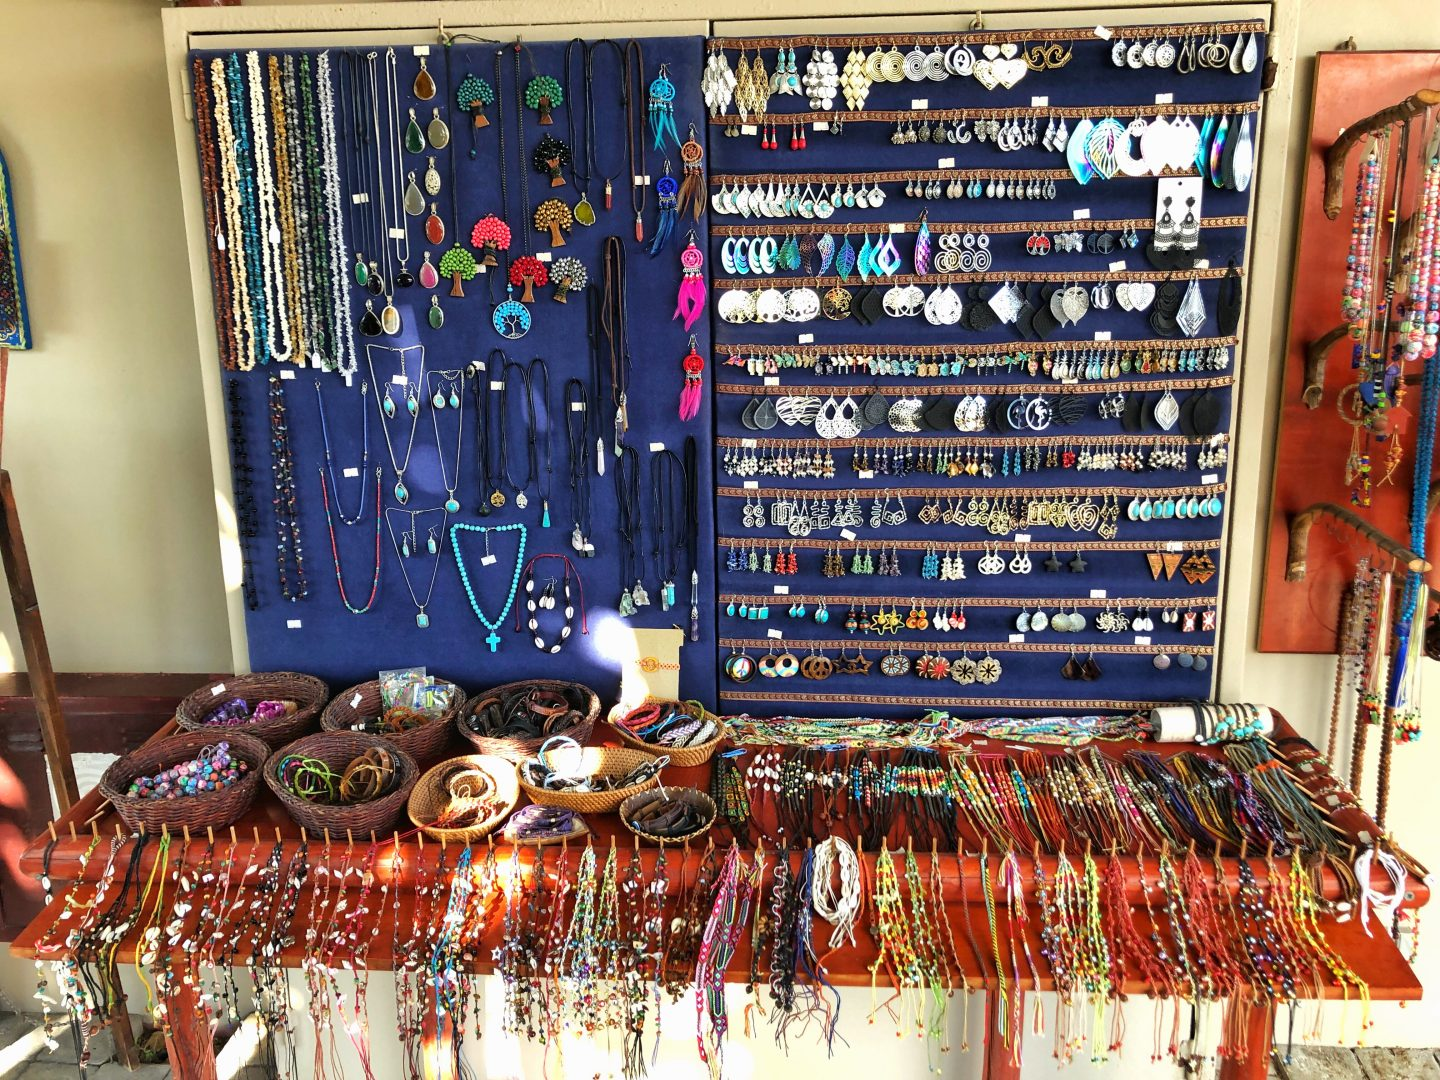 A beautiful jewellery display with hundreds of colourful bracelets and earrings.